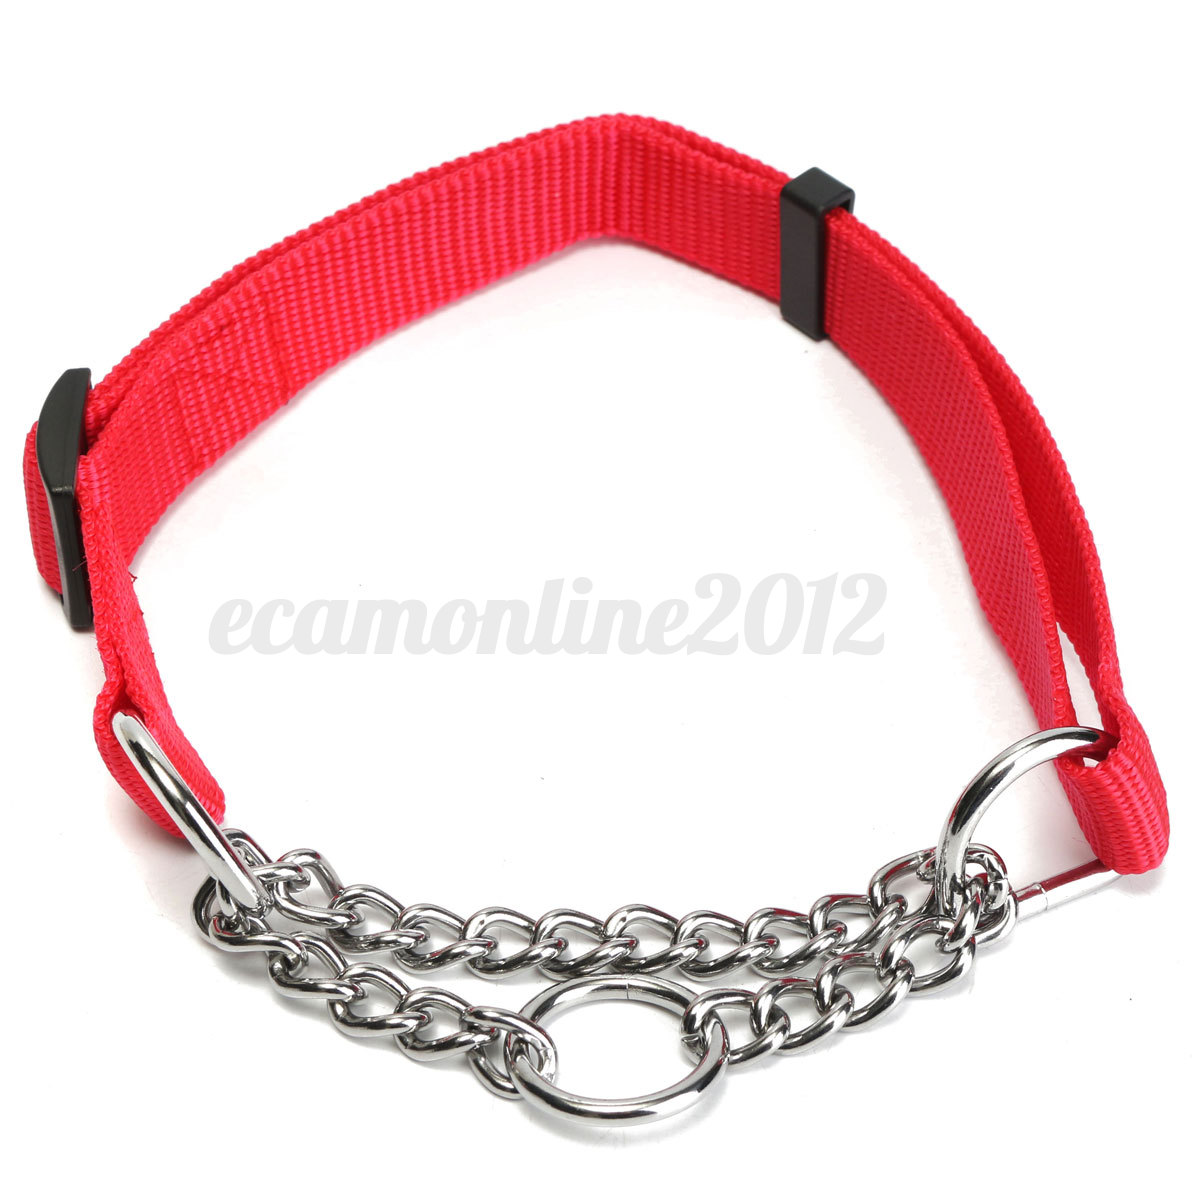 Nylon Adjustable Pet Dog Puppy Half Semi Chain Choker Collar Training Trainer